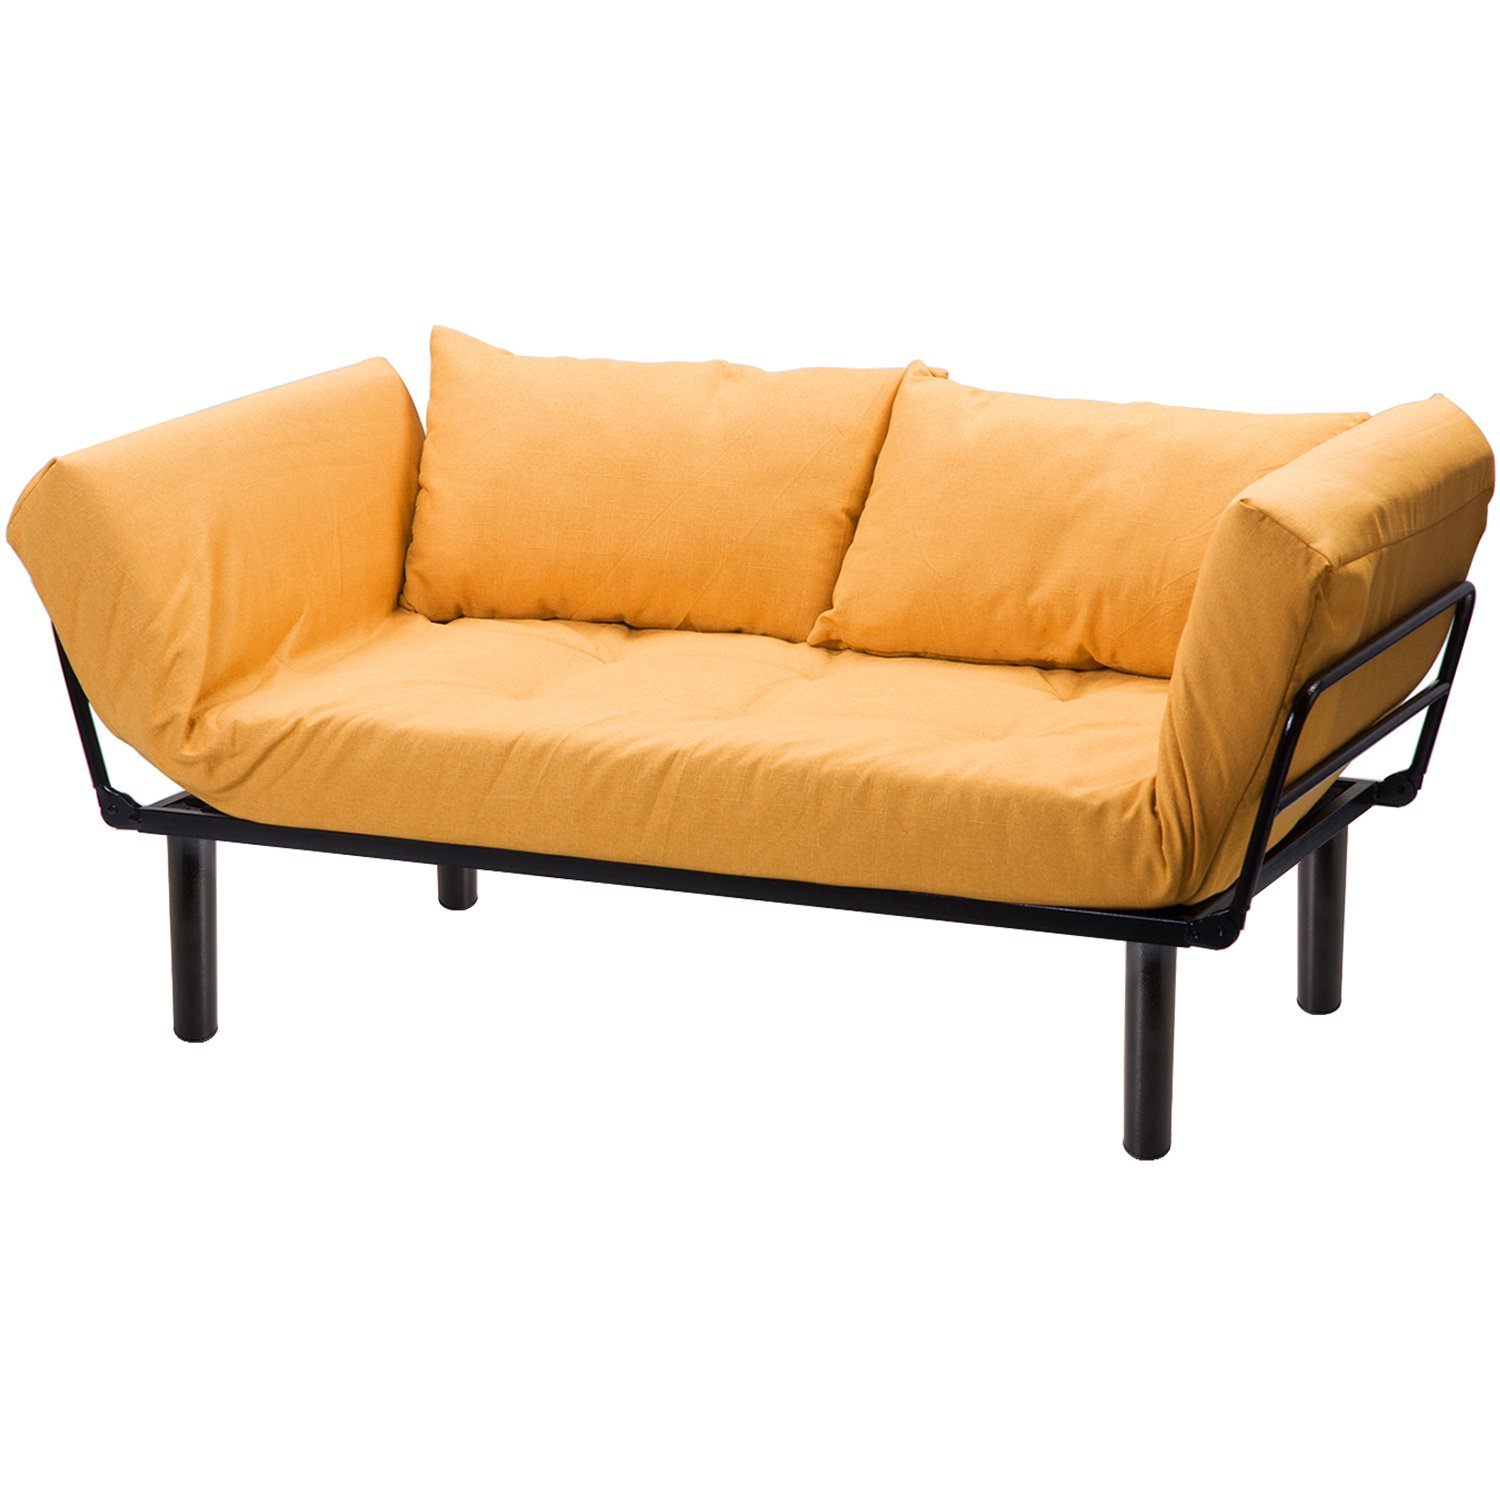 Merax Convertible Sleeper Futon Sofa Chaise Lounge Sofa Bed Metal Frame with 7 inch Mattress, Yellow